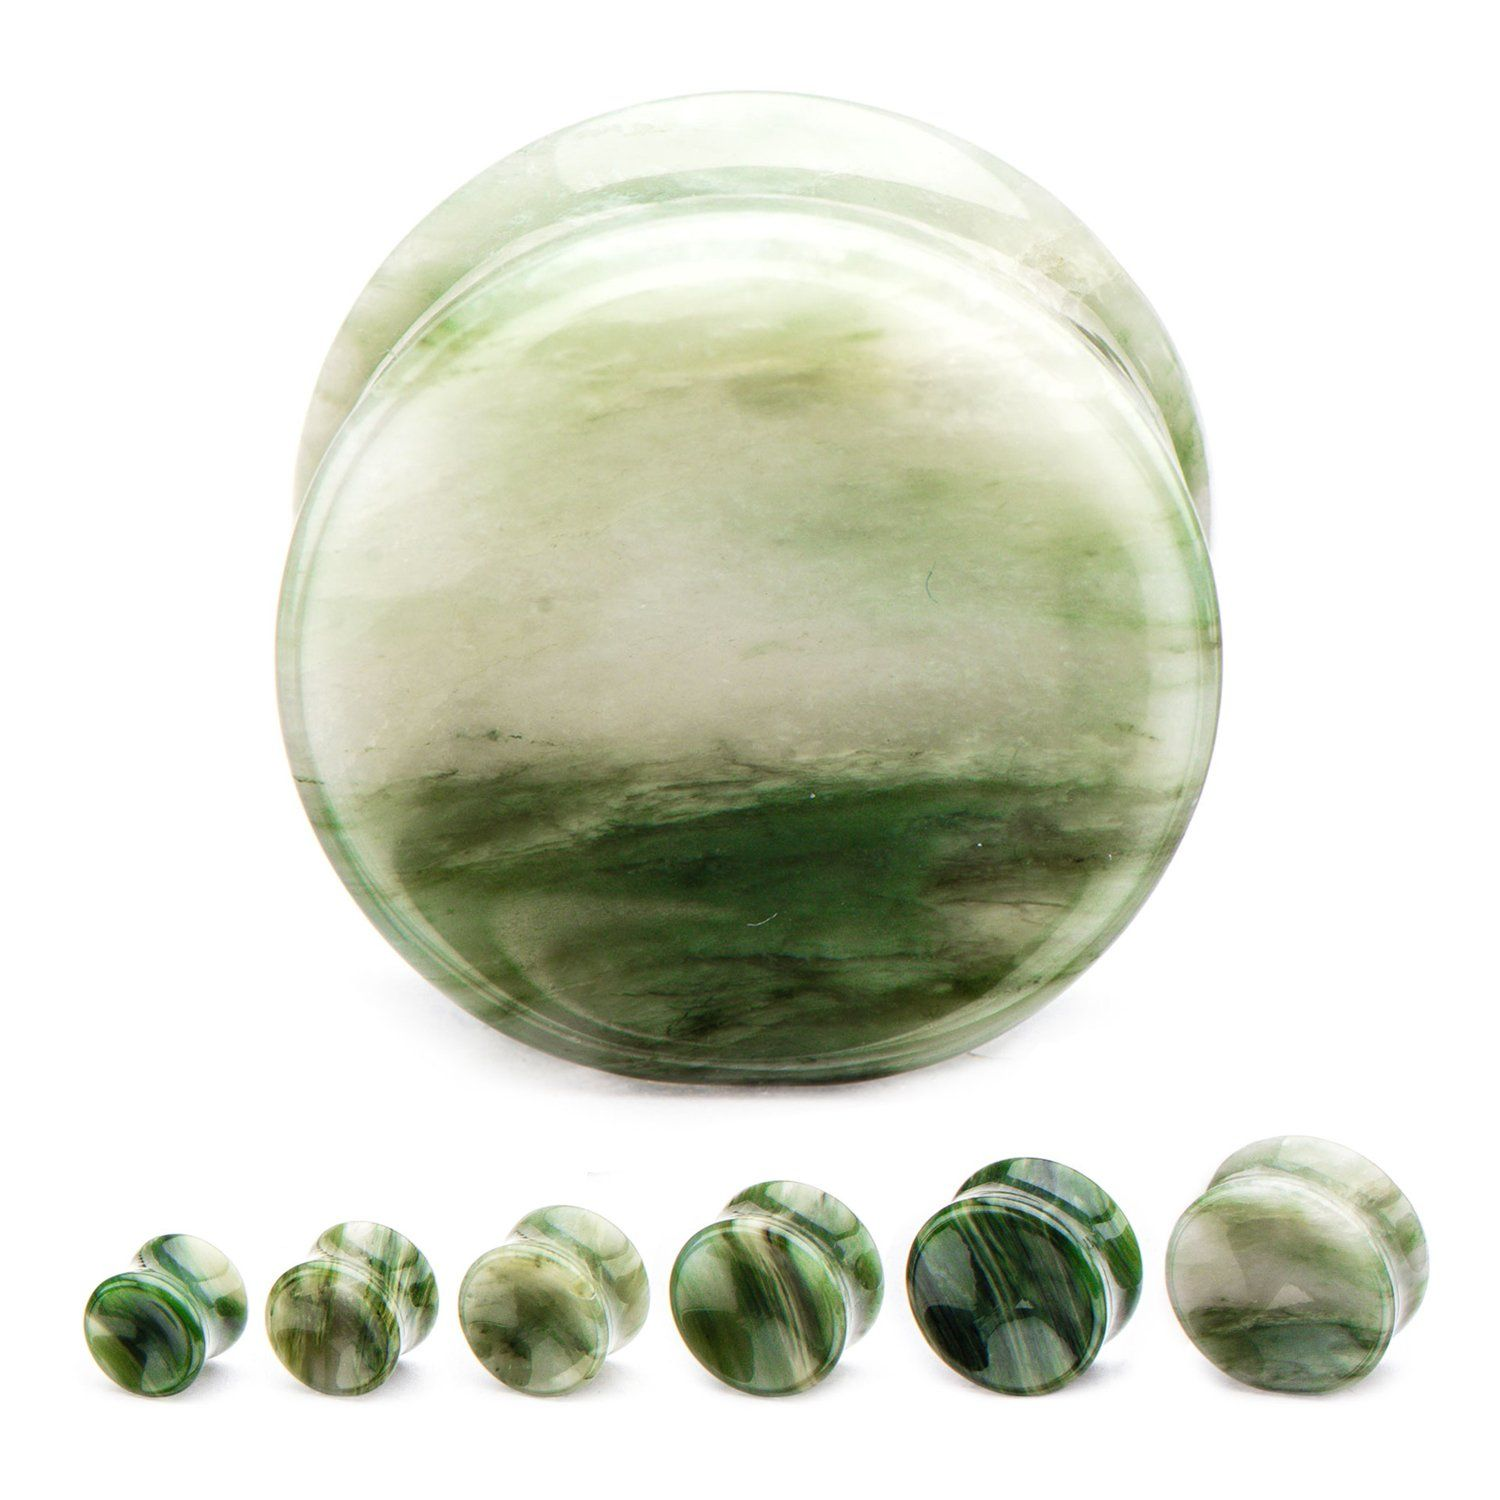 Fern Green Jasper Stone Plugs, concaved finish  Muted Forest